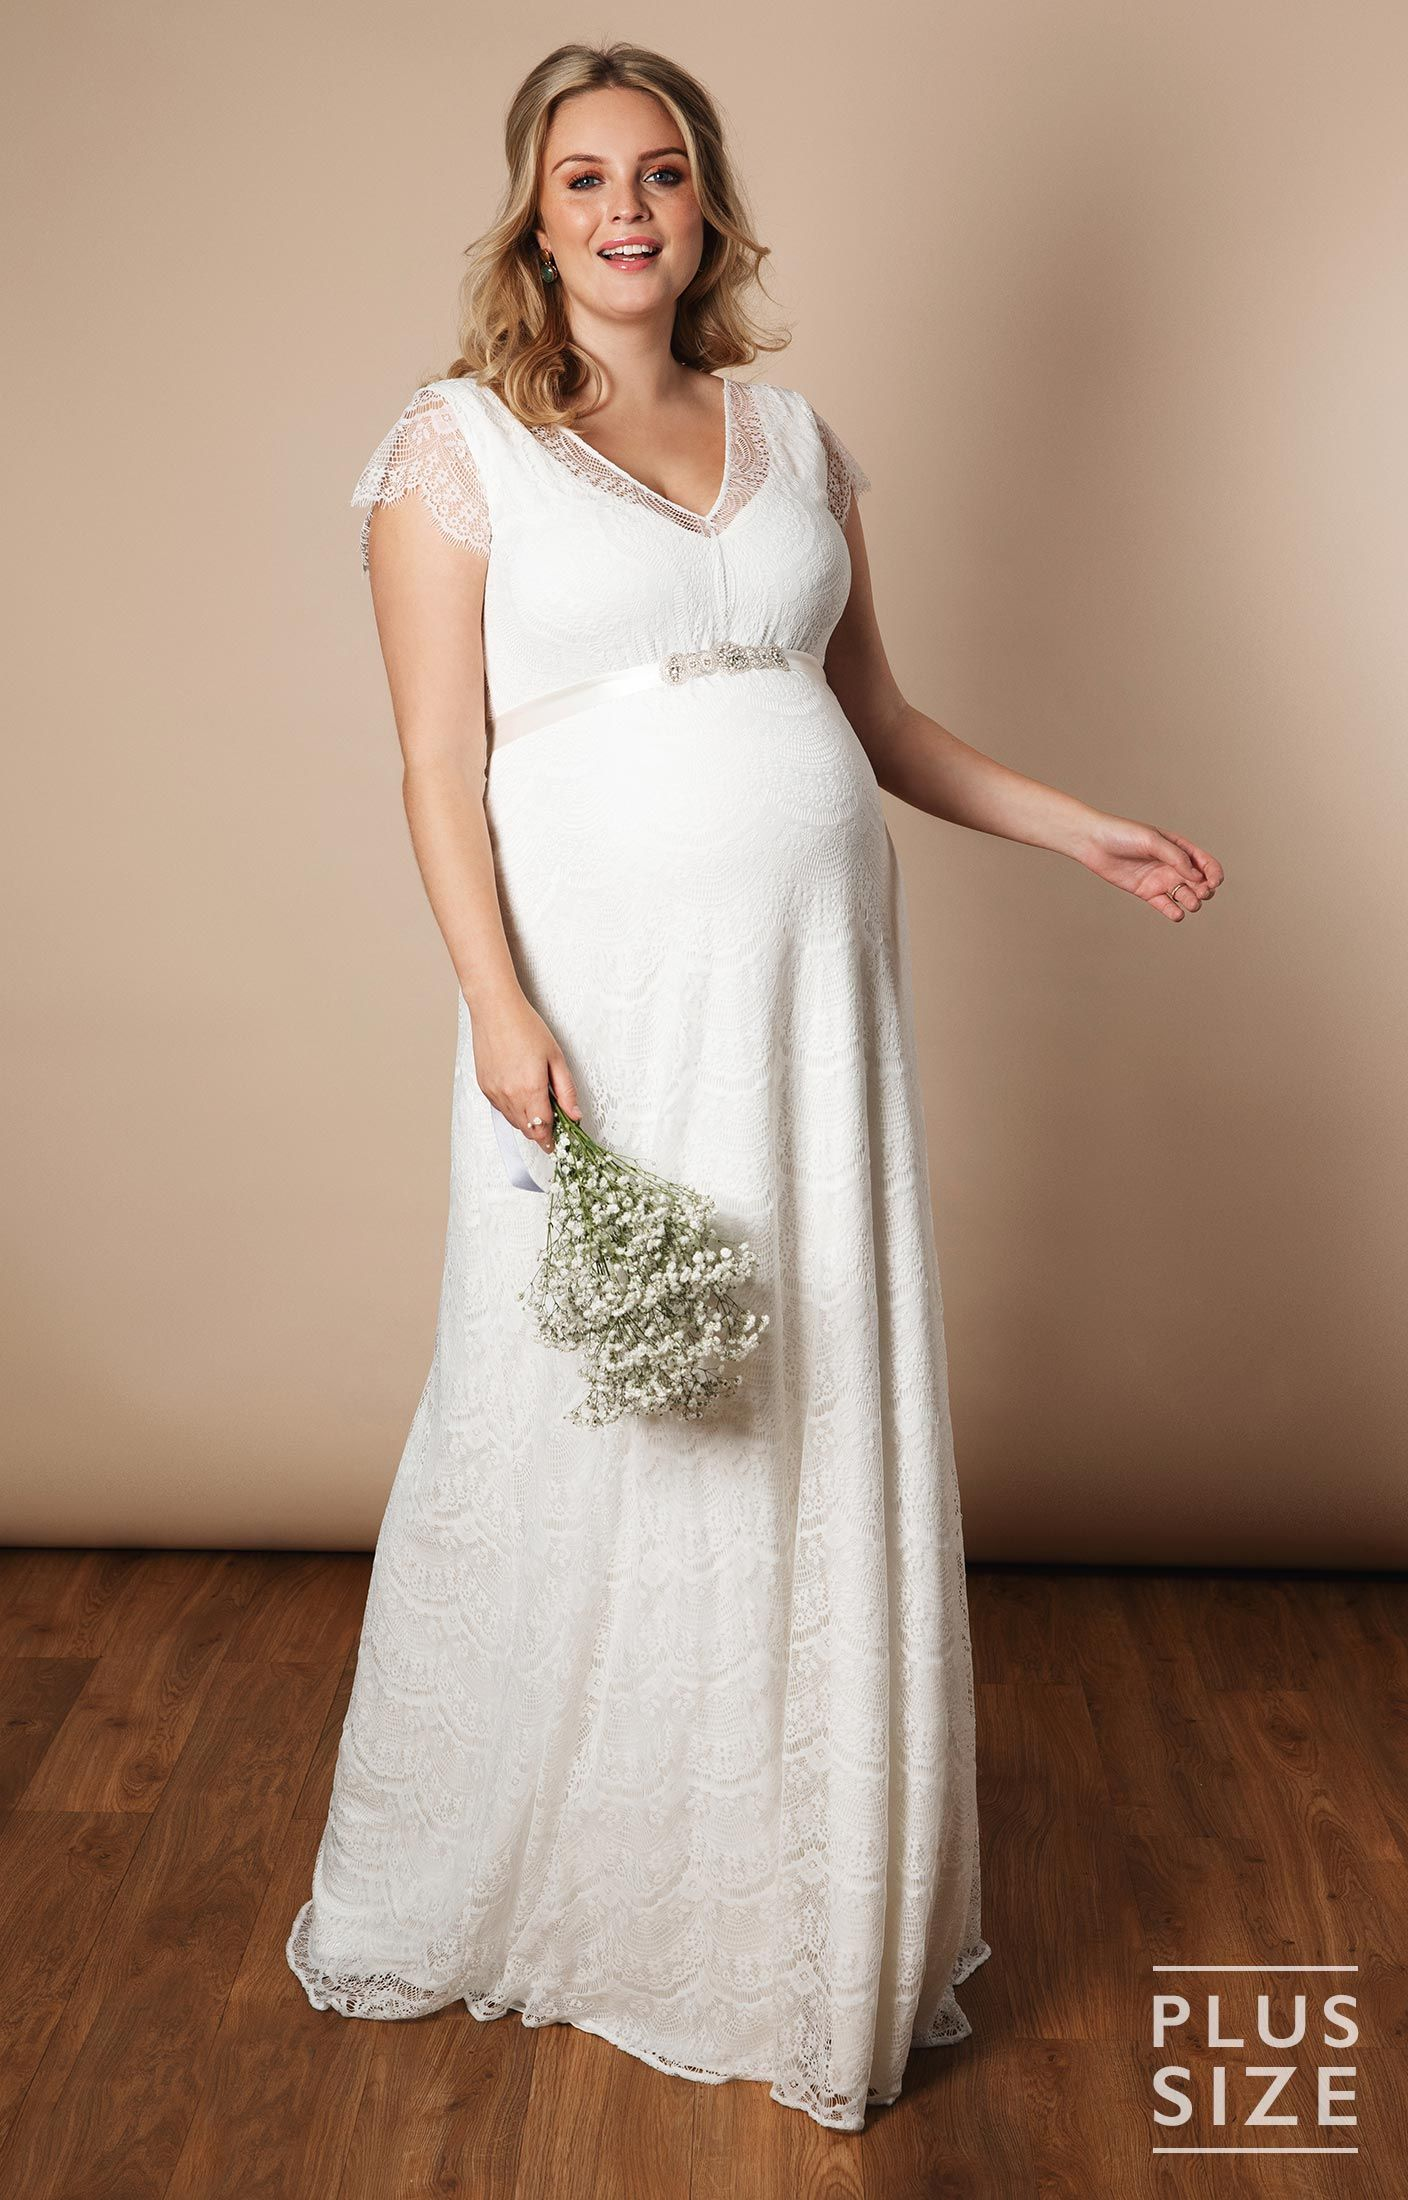 Kristin Plus Size Maternity Wedding Gown Long Ivory White Maternity Wedding Dresses Evening Wear And Party Clothes By Tiffany Rose Pregnant Wedding Dress Wedding Dresses Plus Size 1920s Style Wedding Dresses [ 2200 x 1408 Pixel ]